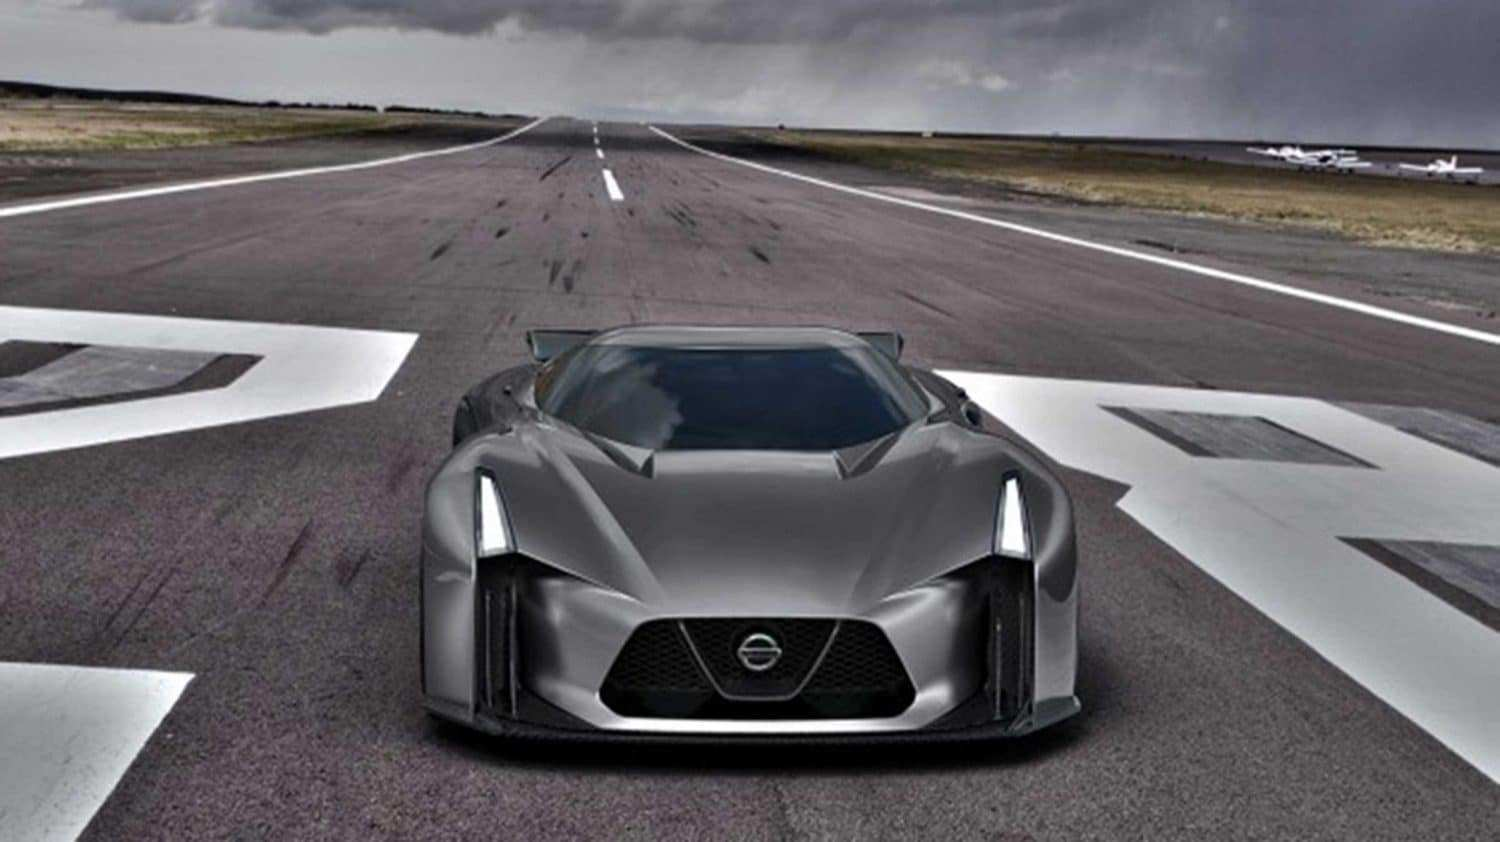 66 All New 2020 Nissan Gtr Horsepower New Review by 2020 Nissan Gtr Horsepower